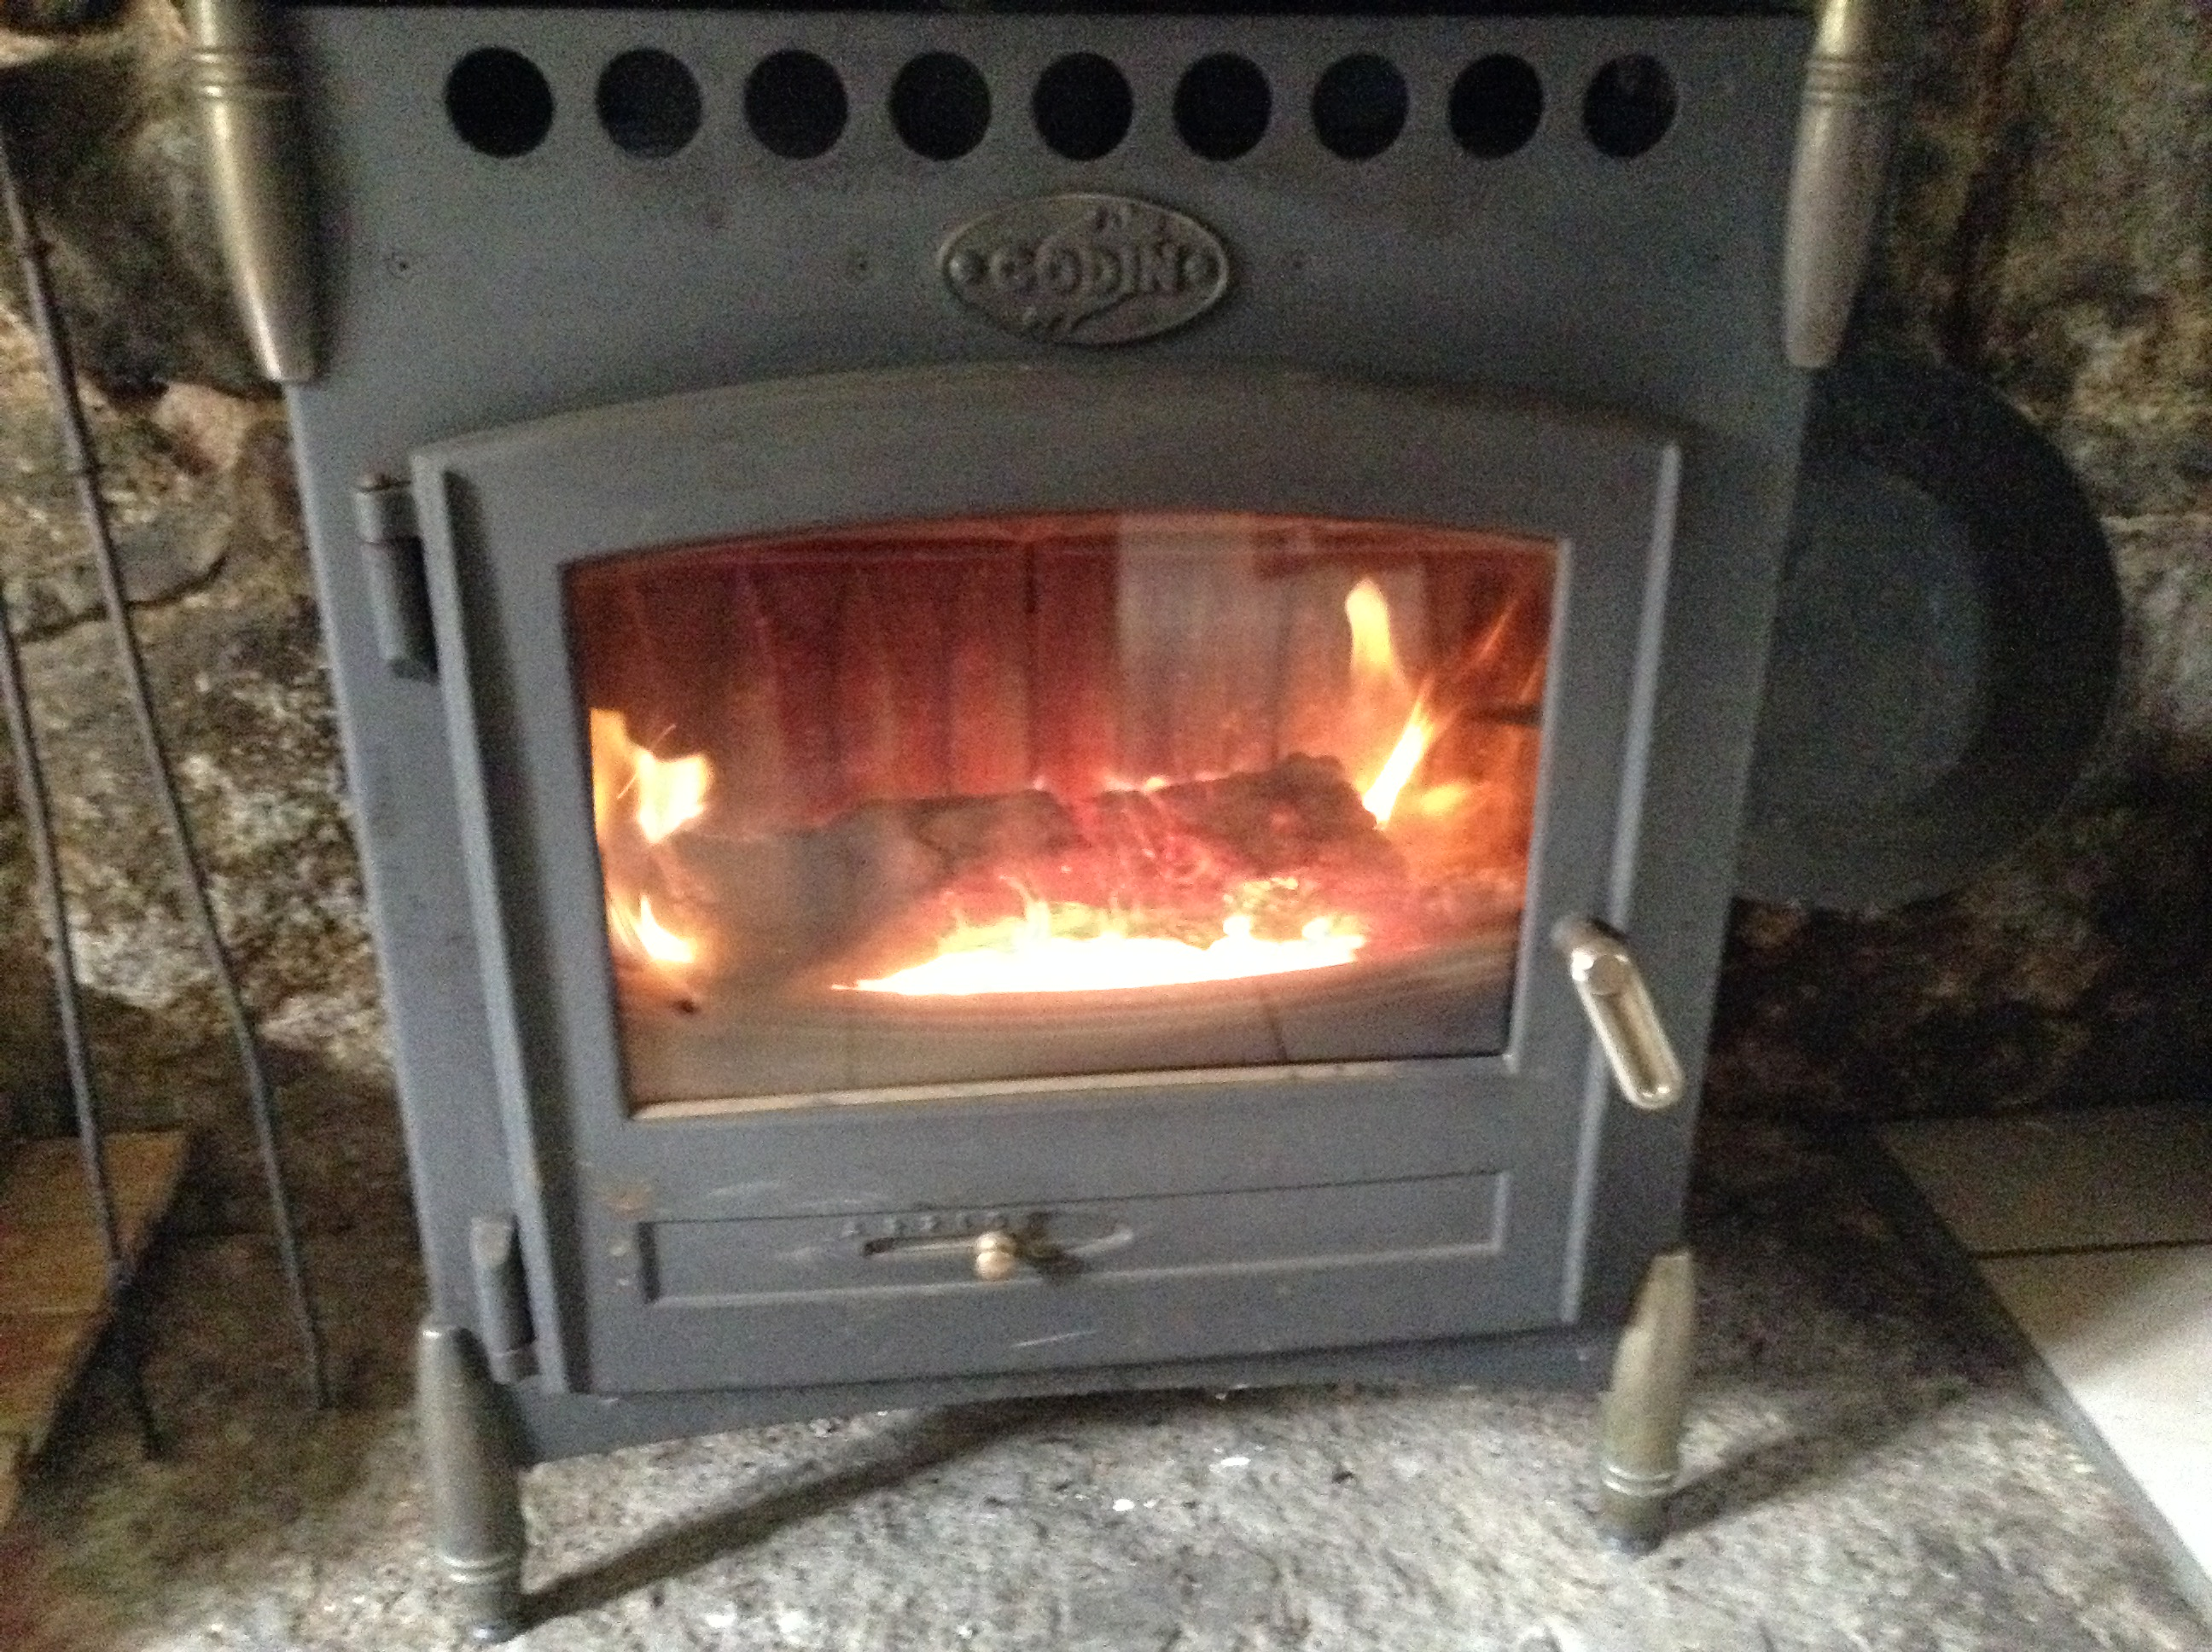 Firestove photo.